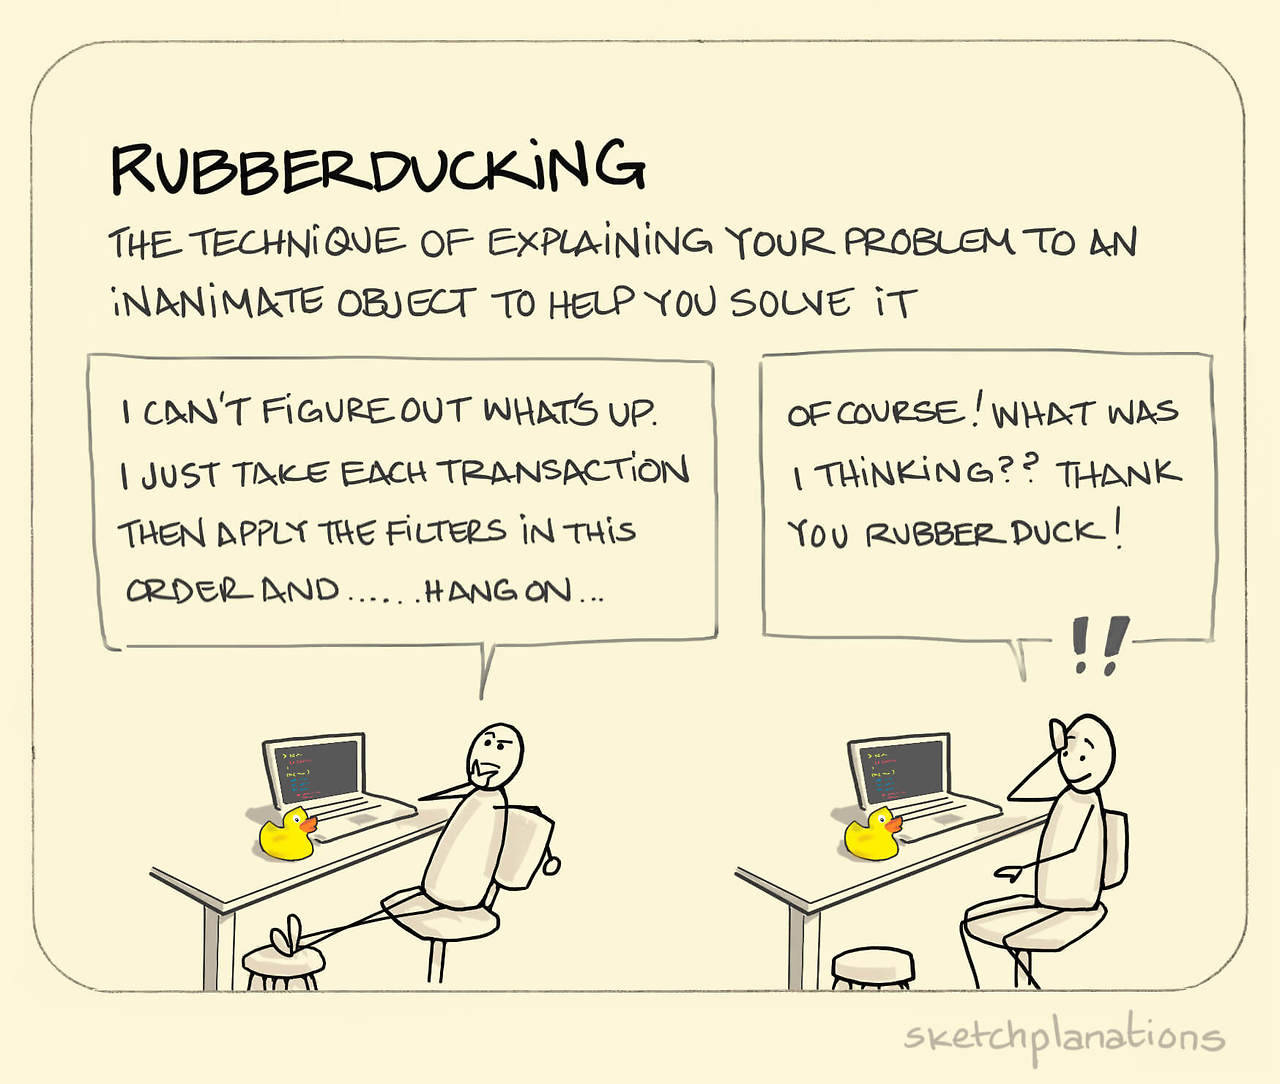 Rubberducking is a way to ask yourself quesions from a caring perspective